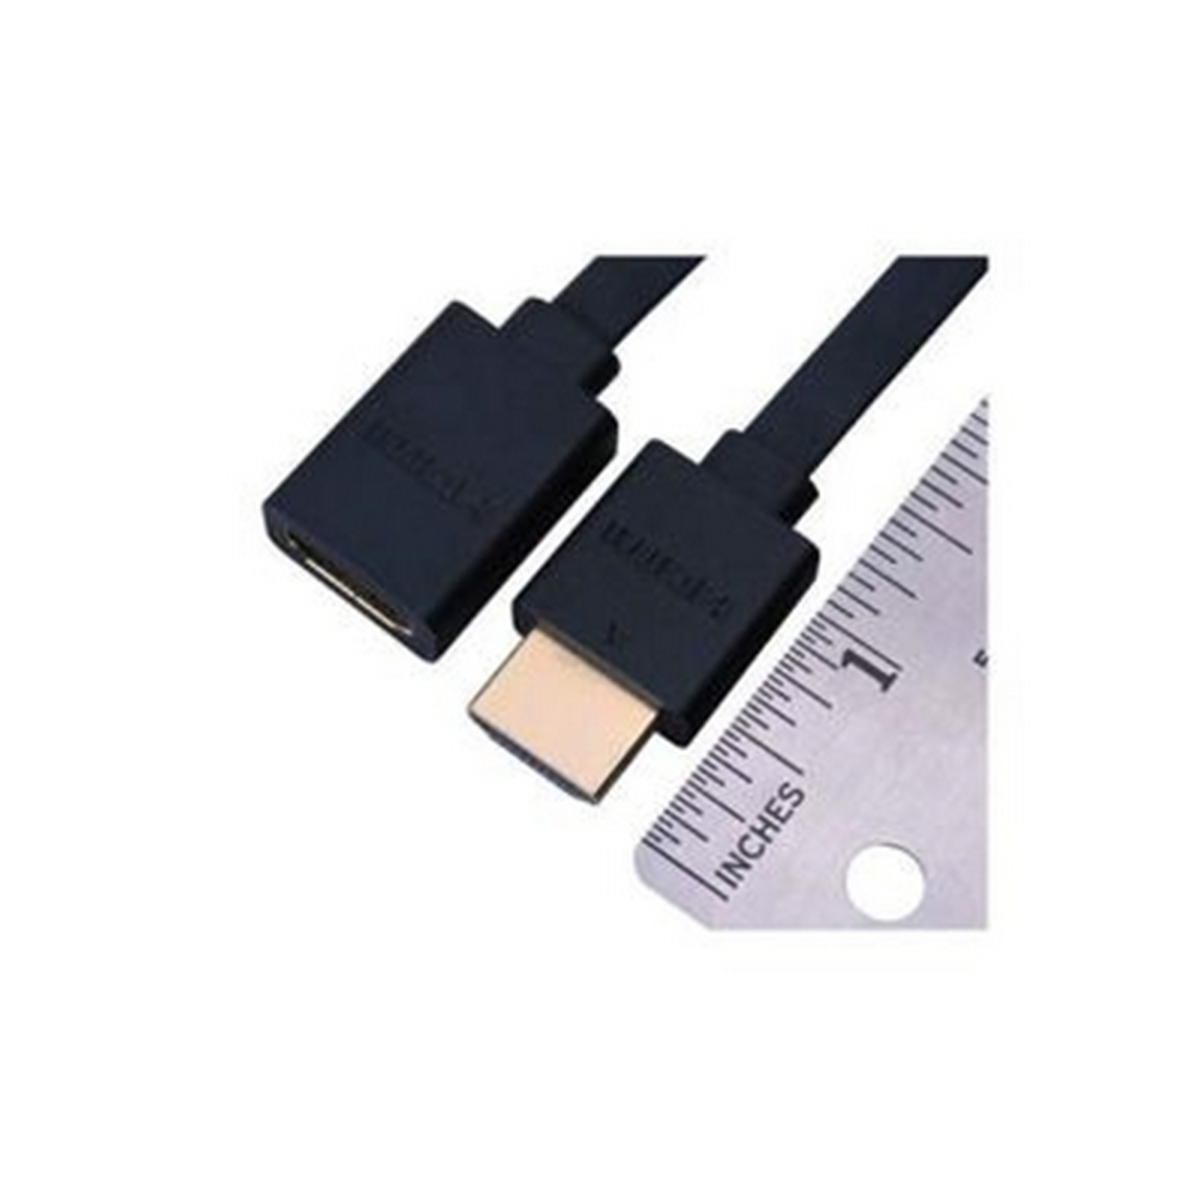 Vanco Super Flex Flat HDMI High Speed Male to Female Cable with Ethernet- Length: 6 inch.